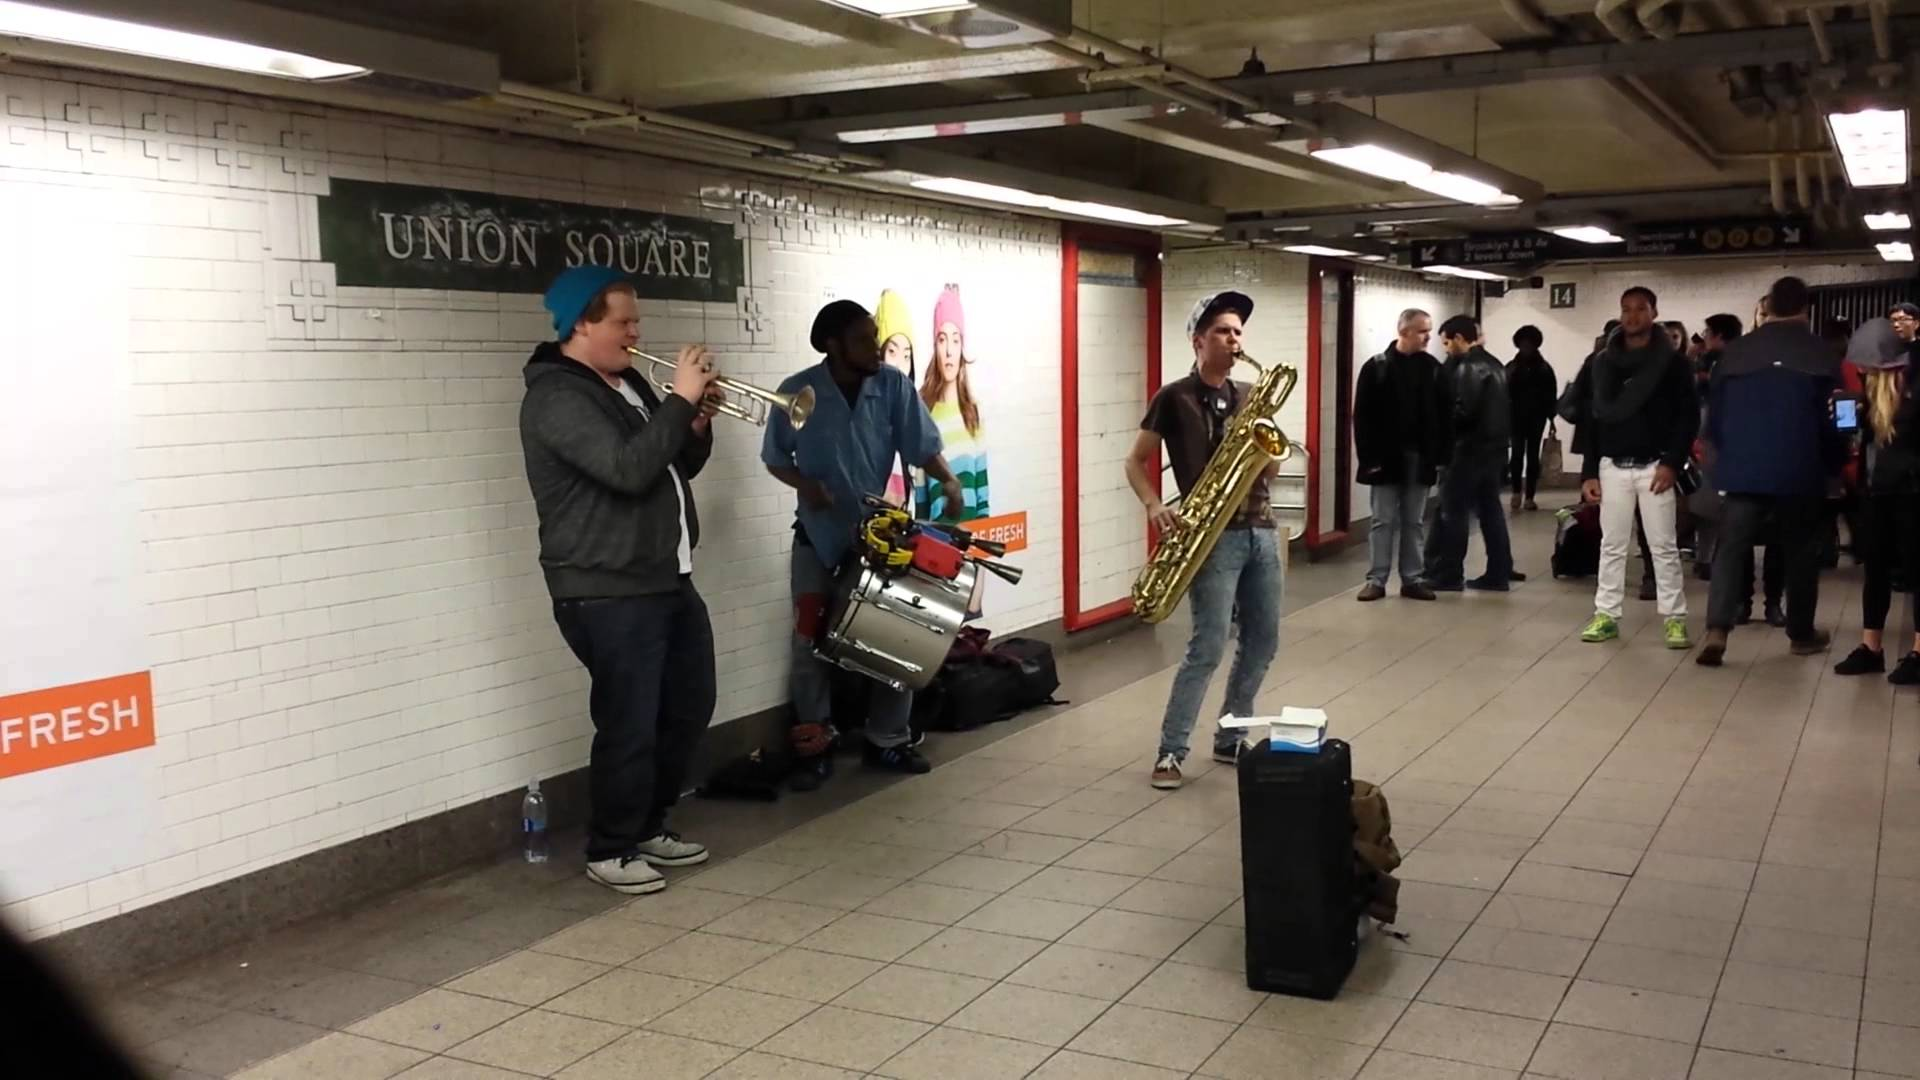 Introducing: Too Many Zooz (Video)